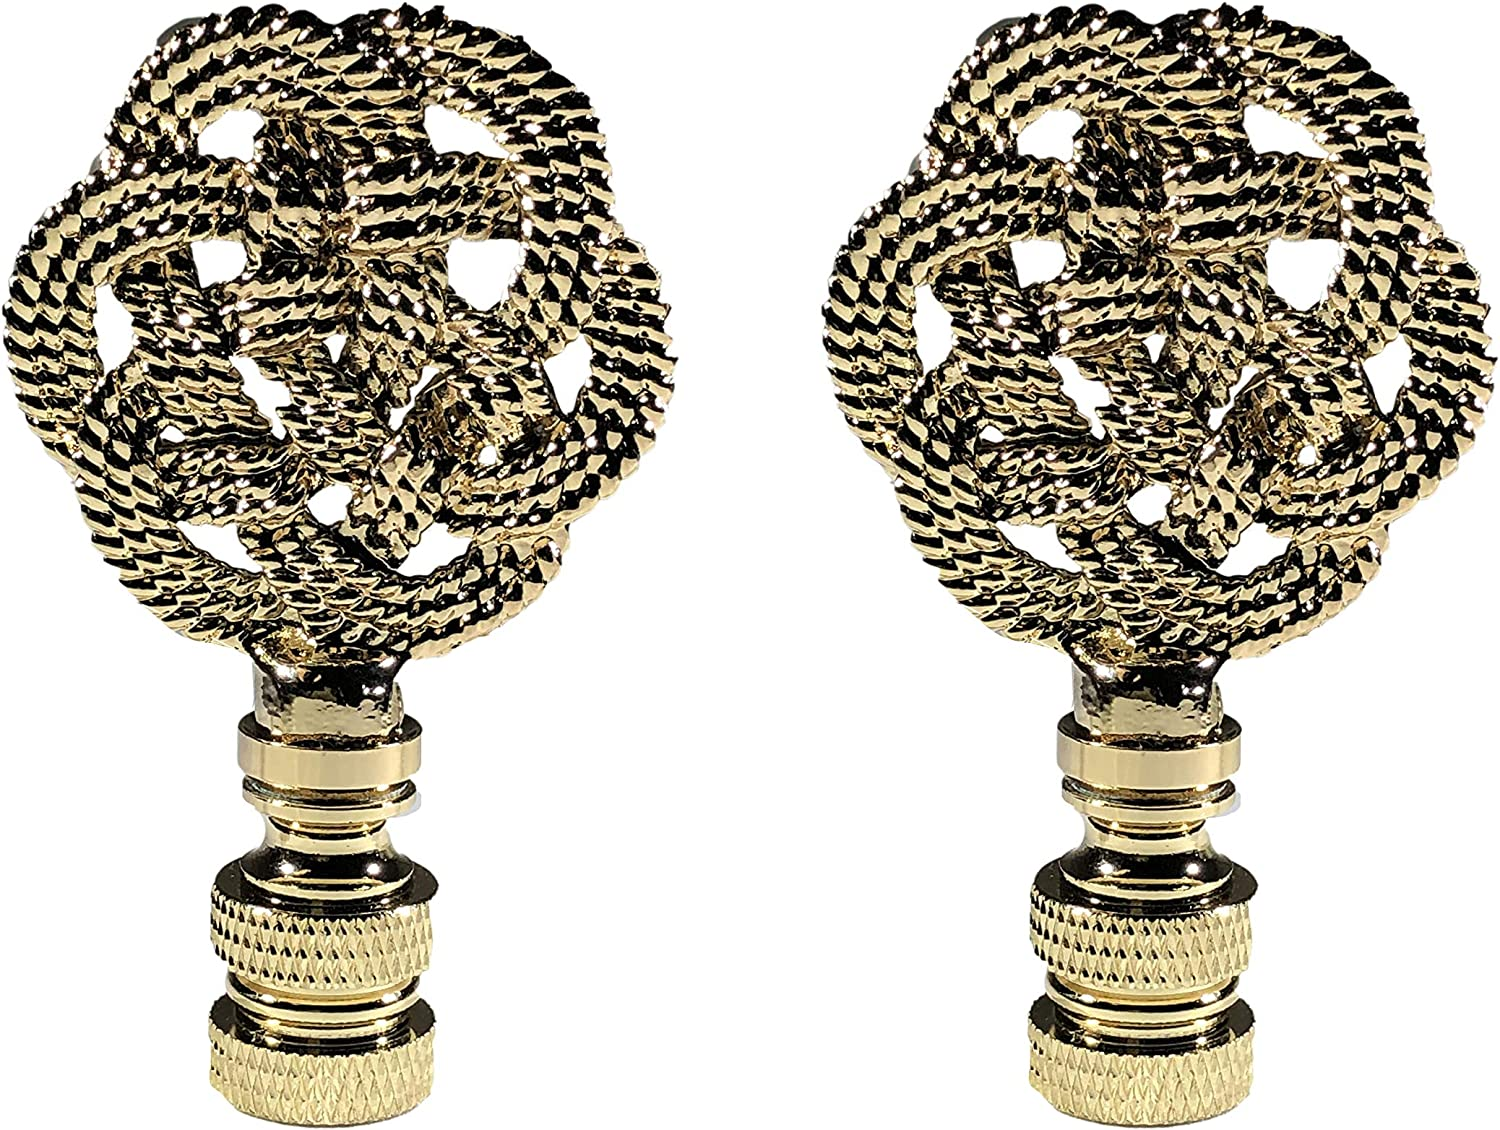 Royal Designs Inc. Decorative Celtic Polished Knot Ranking TOP7 Lamp Finial Cheap